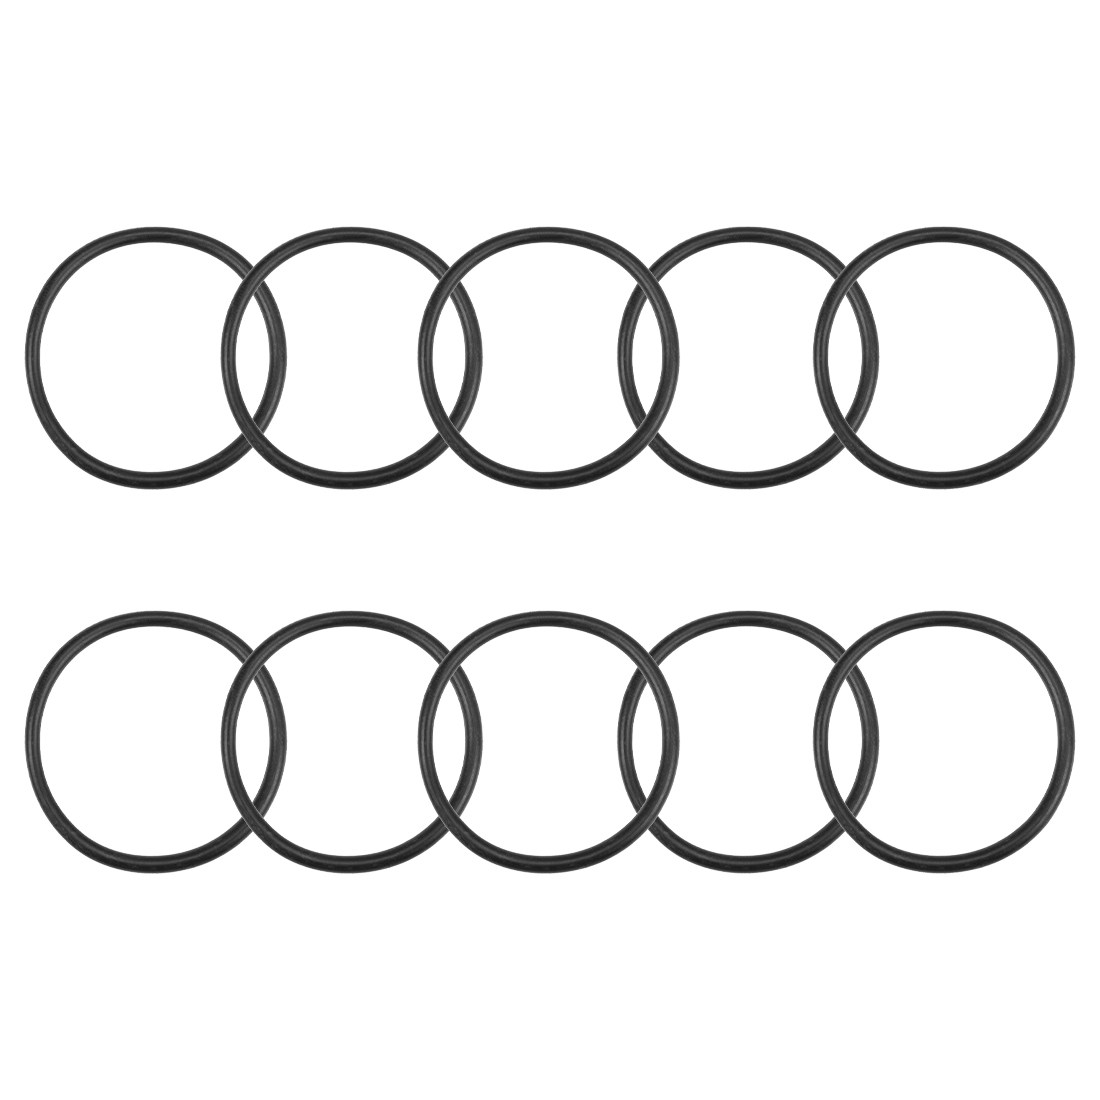 O-Rings Nitrile Rubber 34.5mm x 39.8mm x 2.65mm Round Seal Gasket 10 Pcs